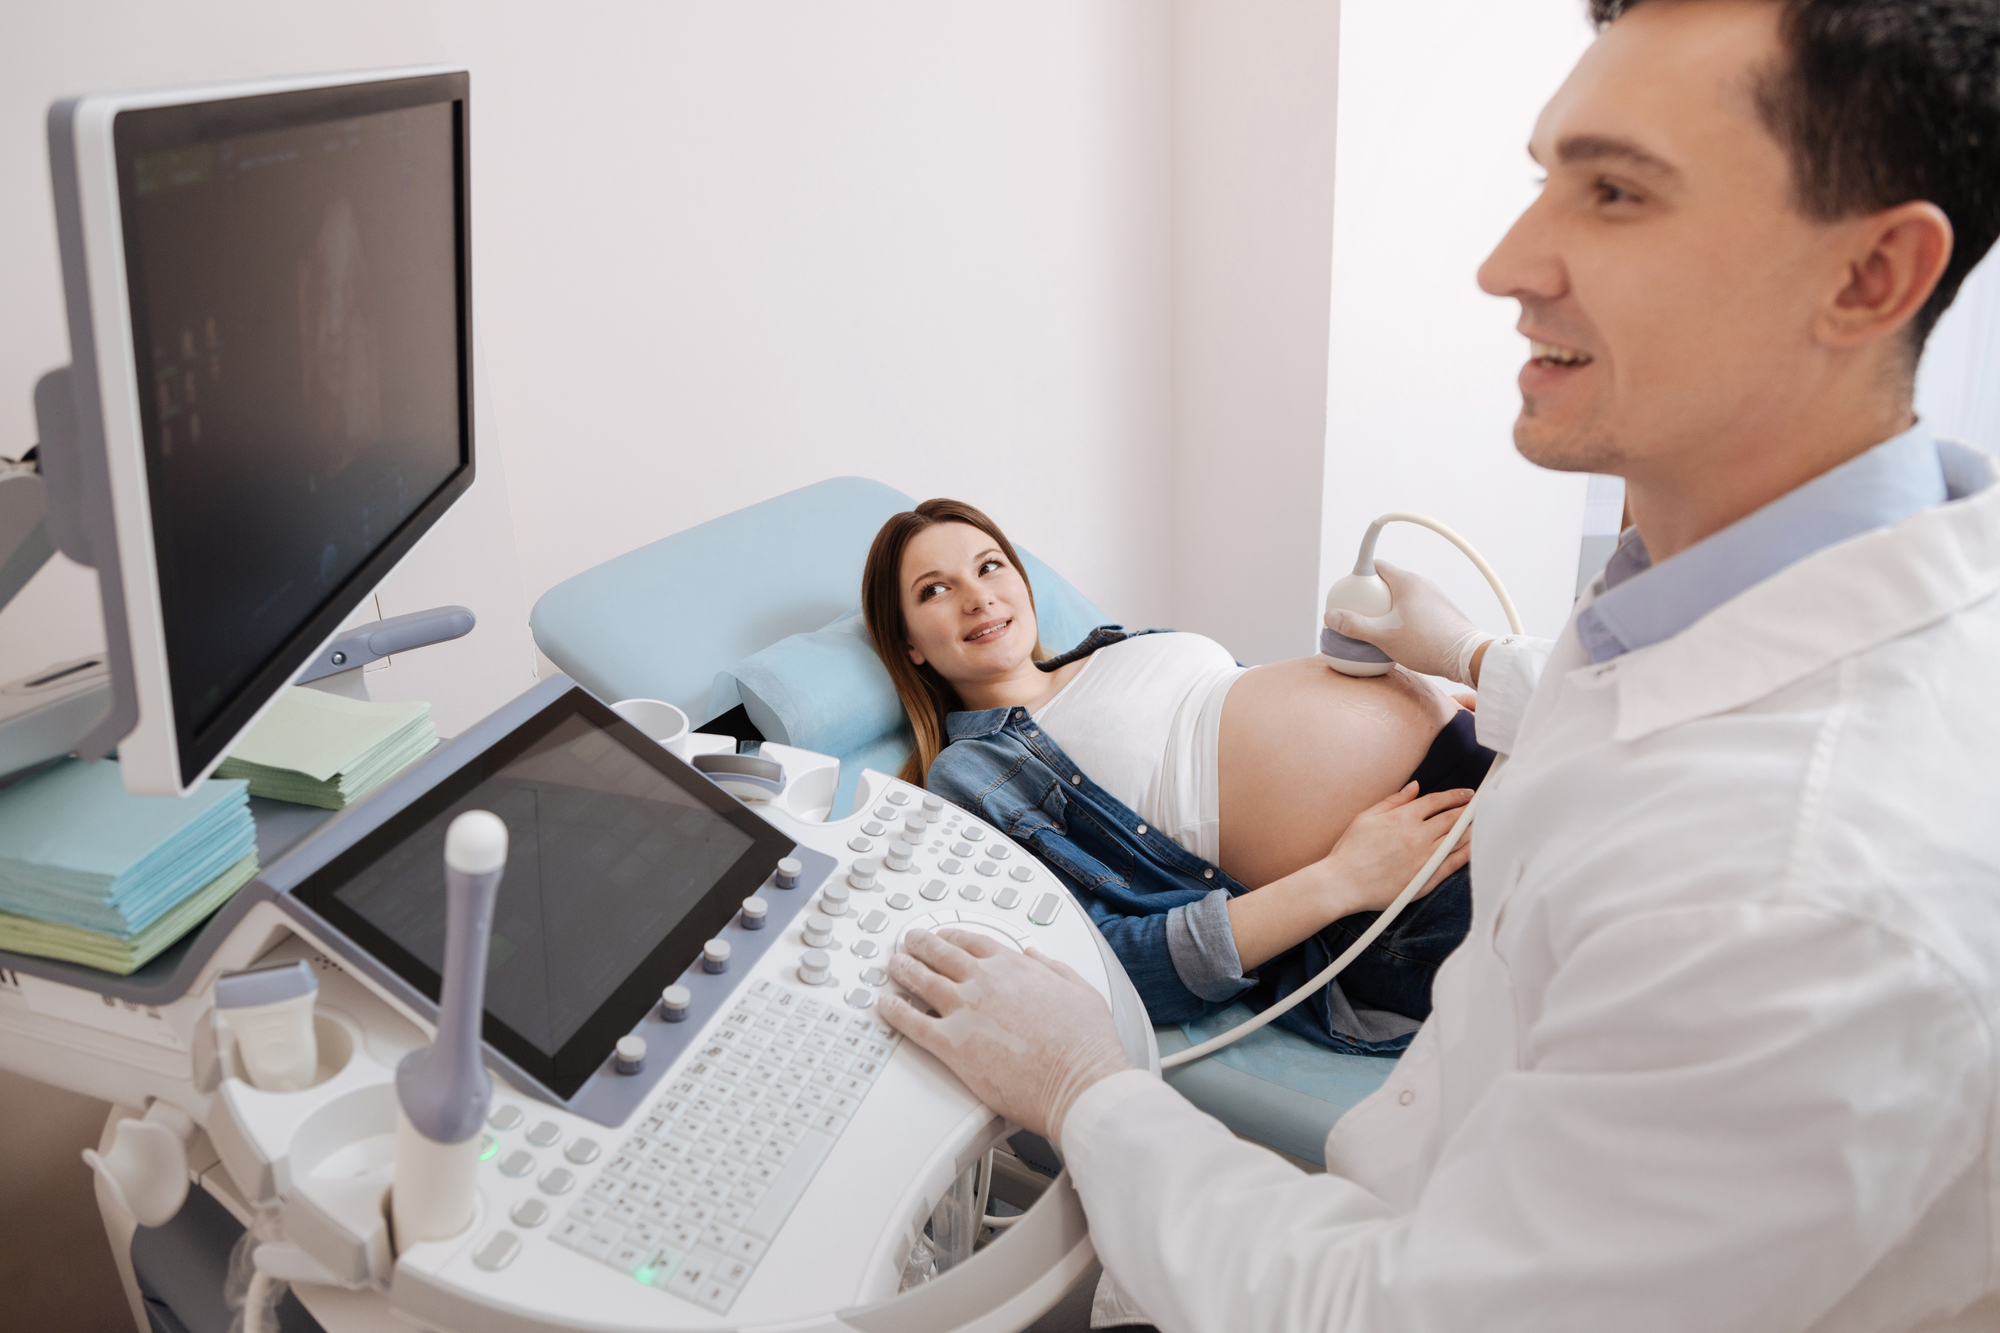 obstetrician working in the hospital while performing an ultrasound of pregnant belly, monitoring and consulting pregnant patient